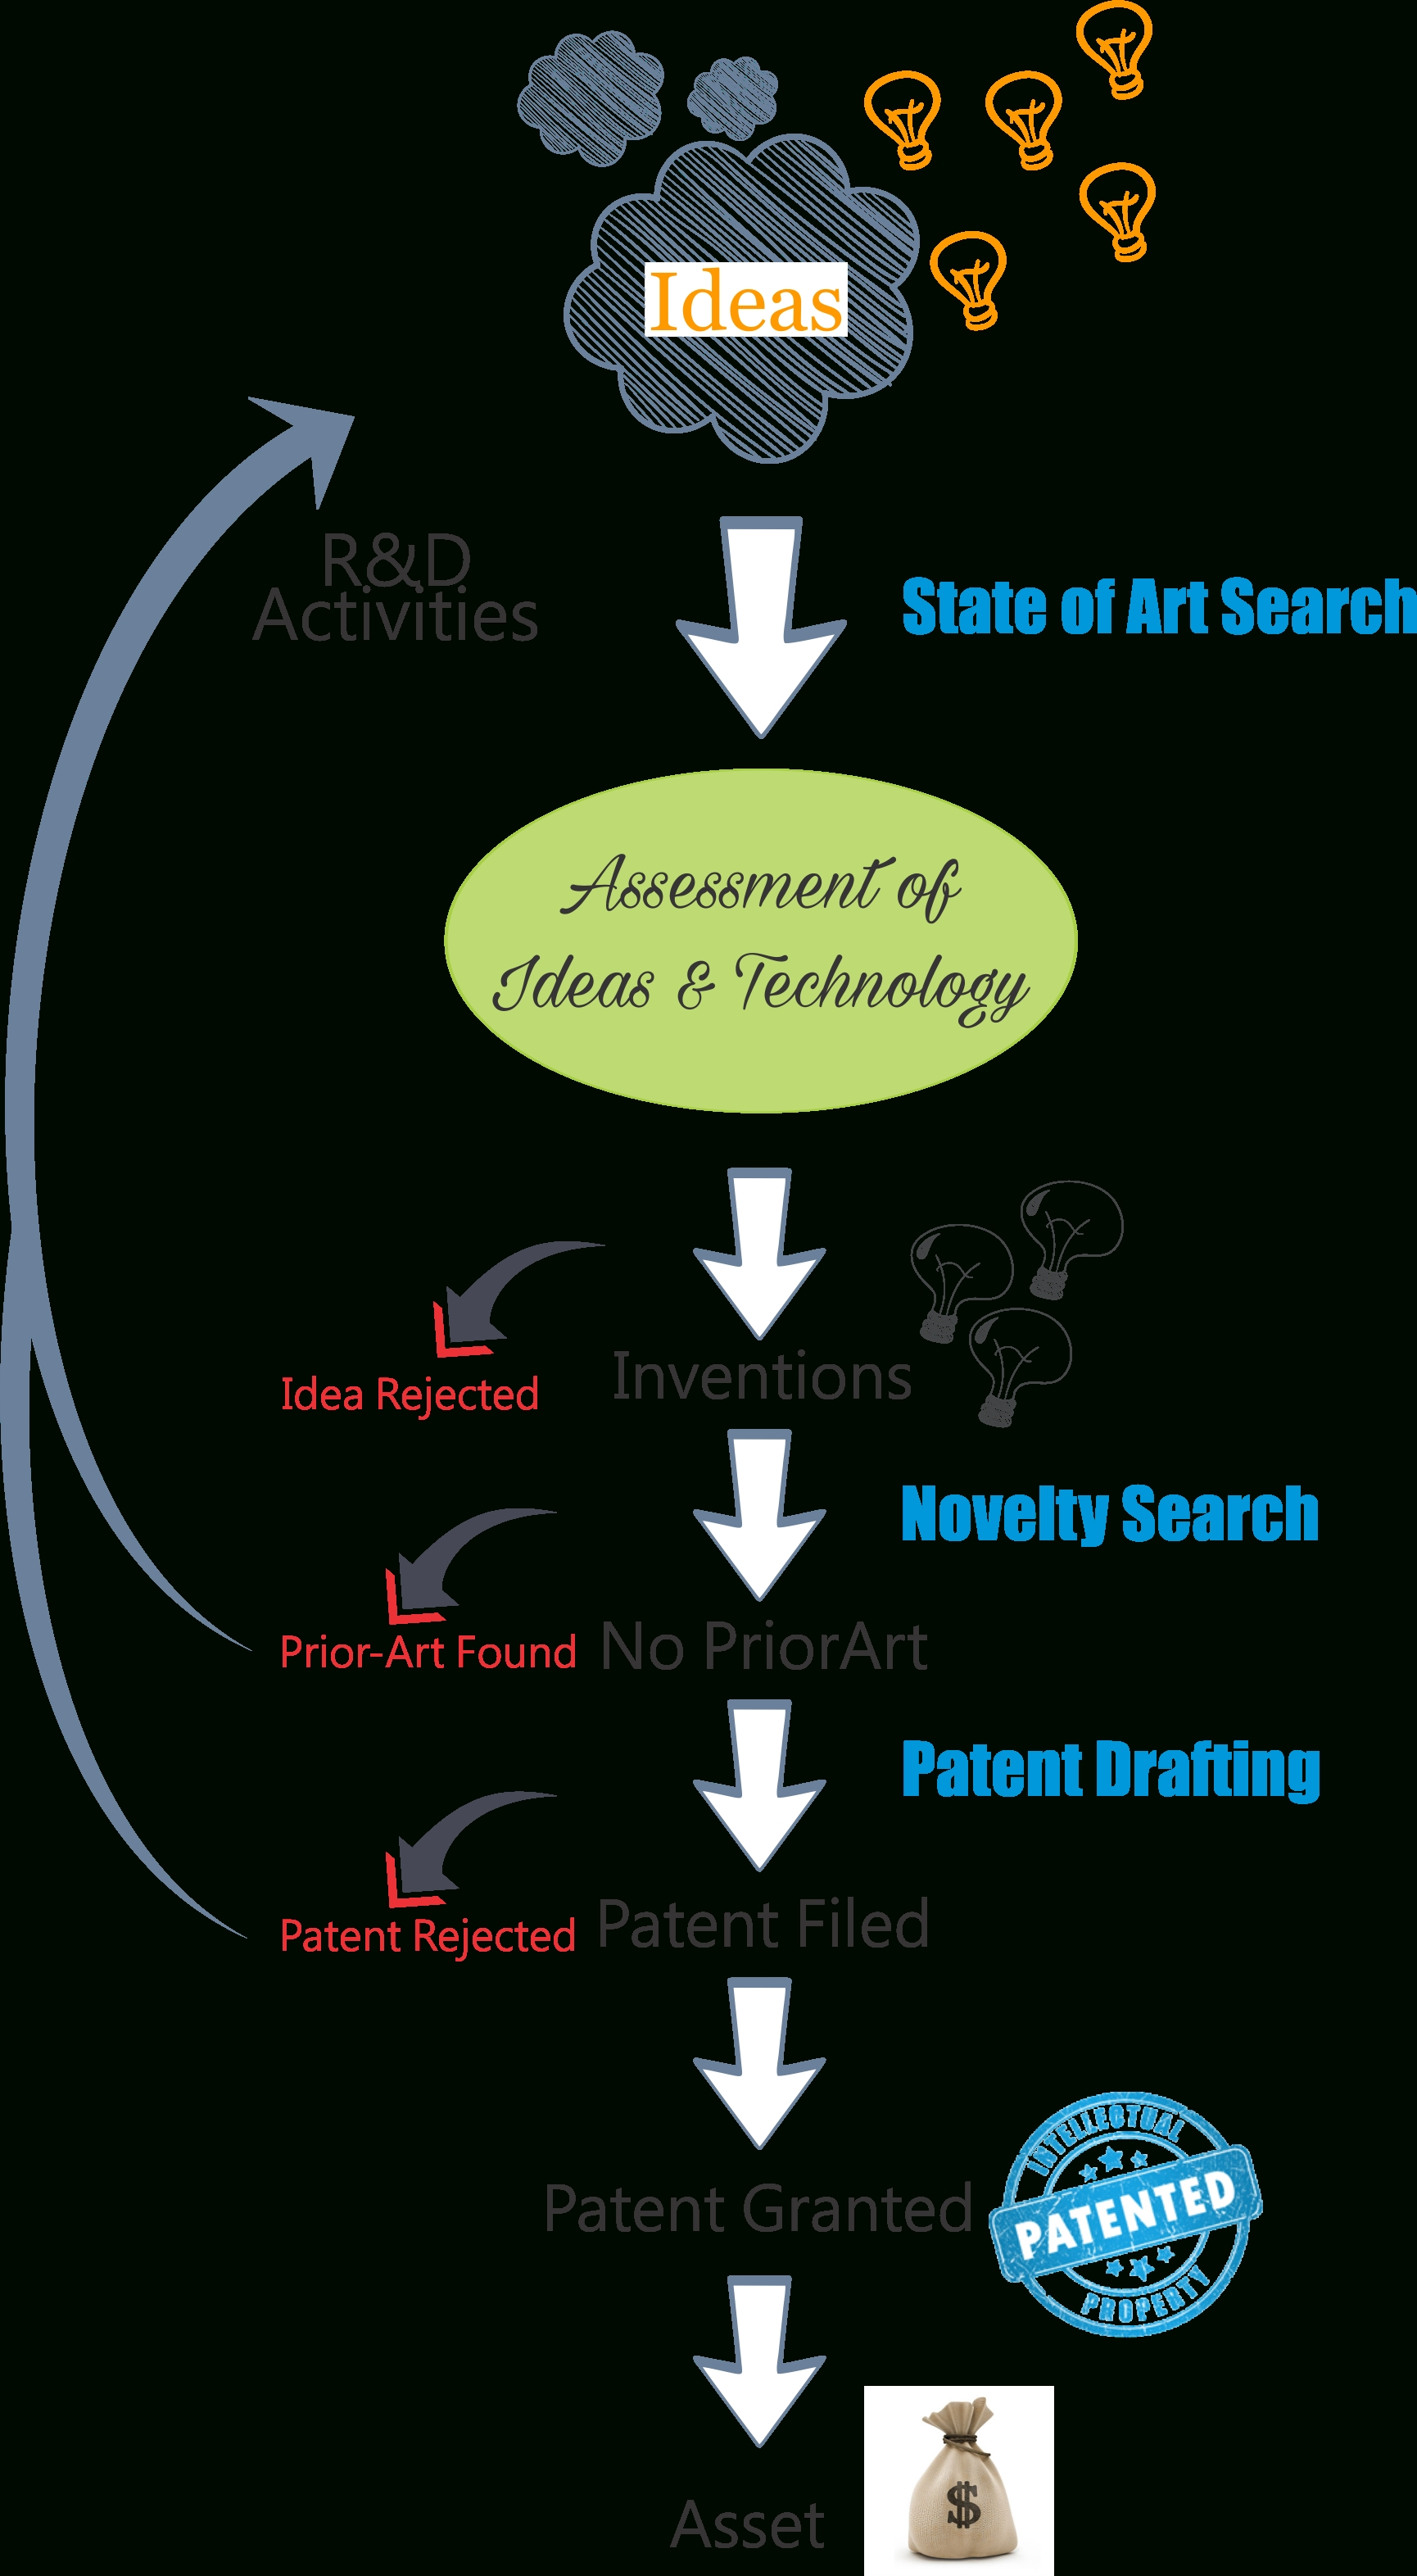 10 Stylish Steps To Patent An Idea patentability search novelty search state of the art search 2020